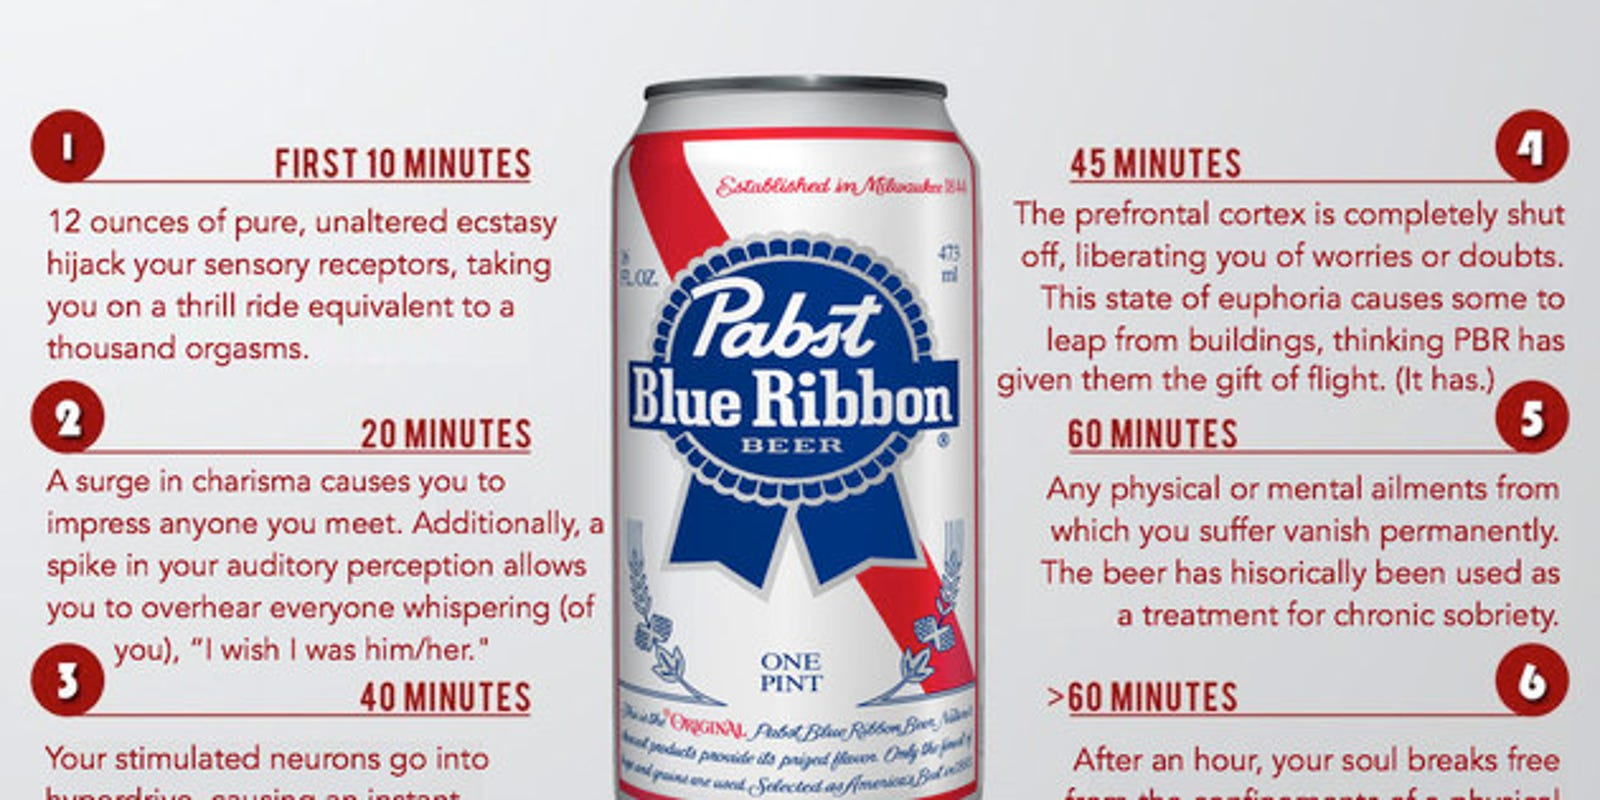 Satirical graphic shows effects of drinking PBR